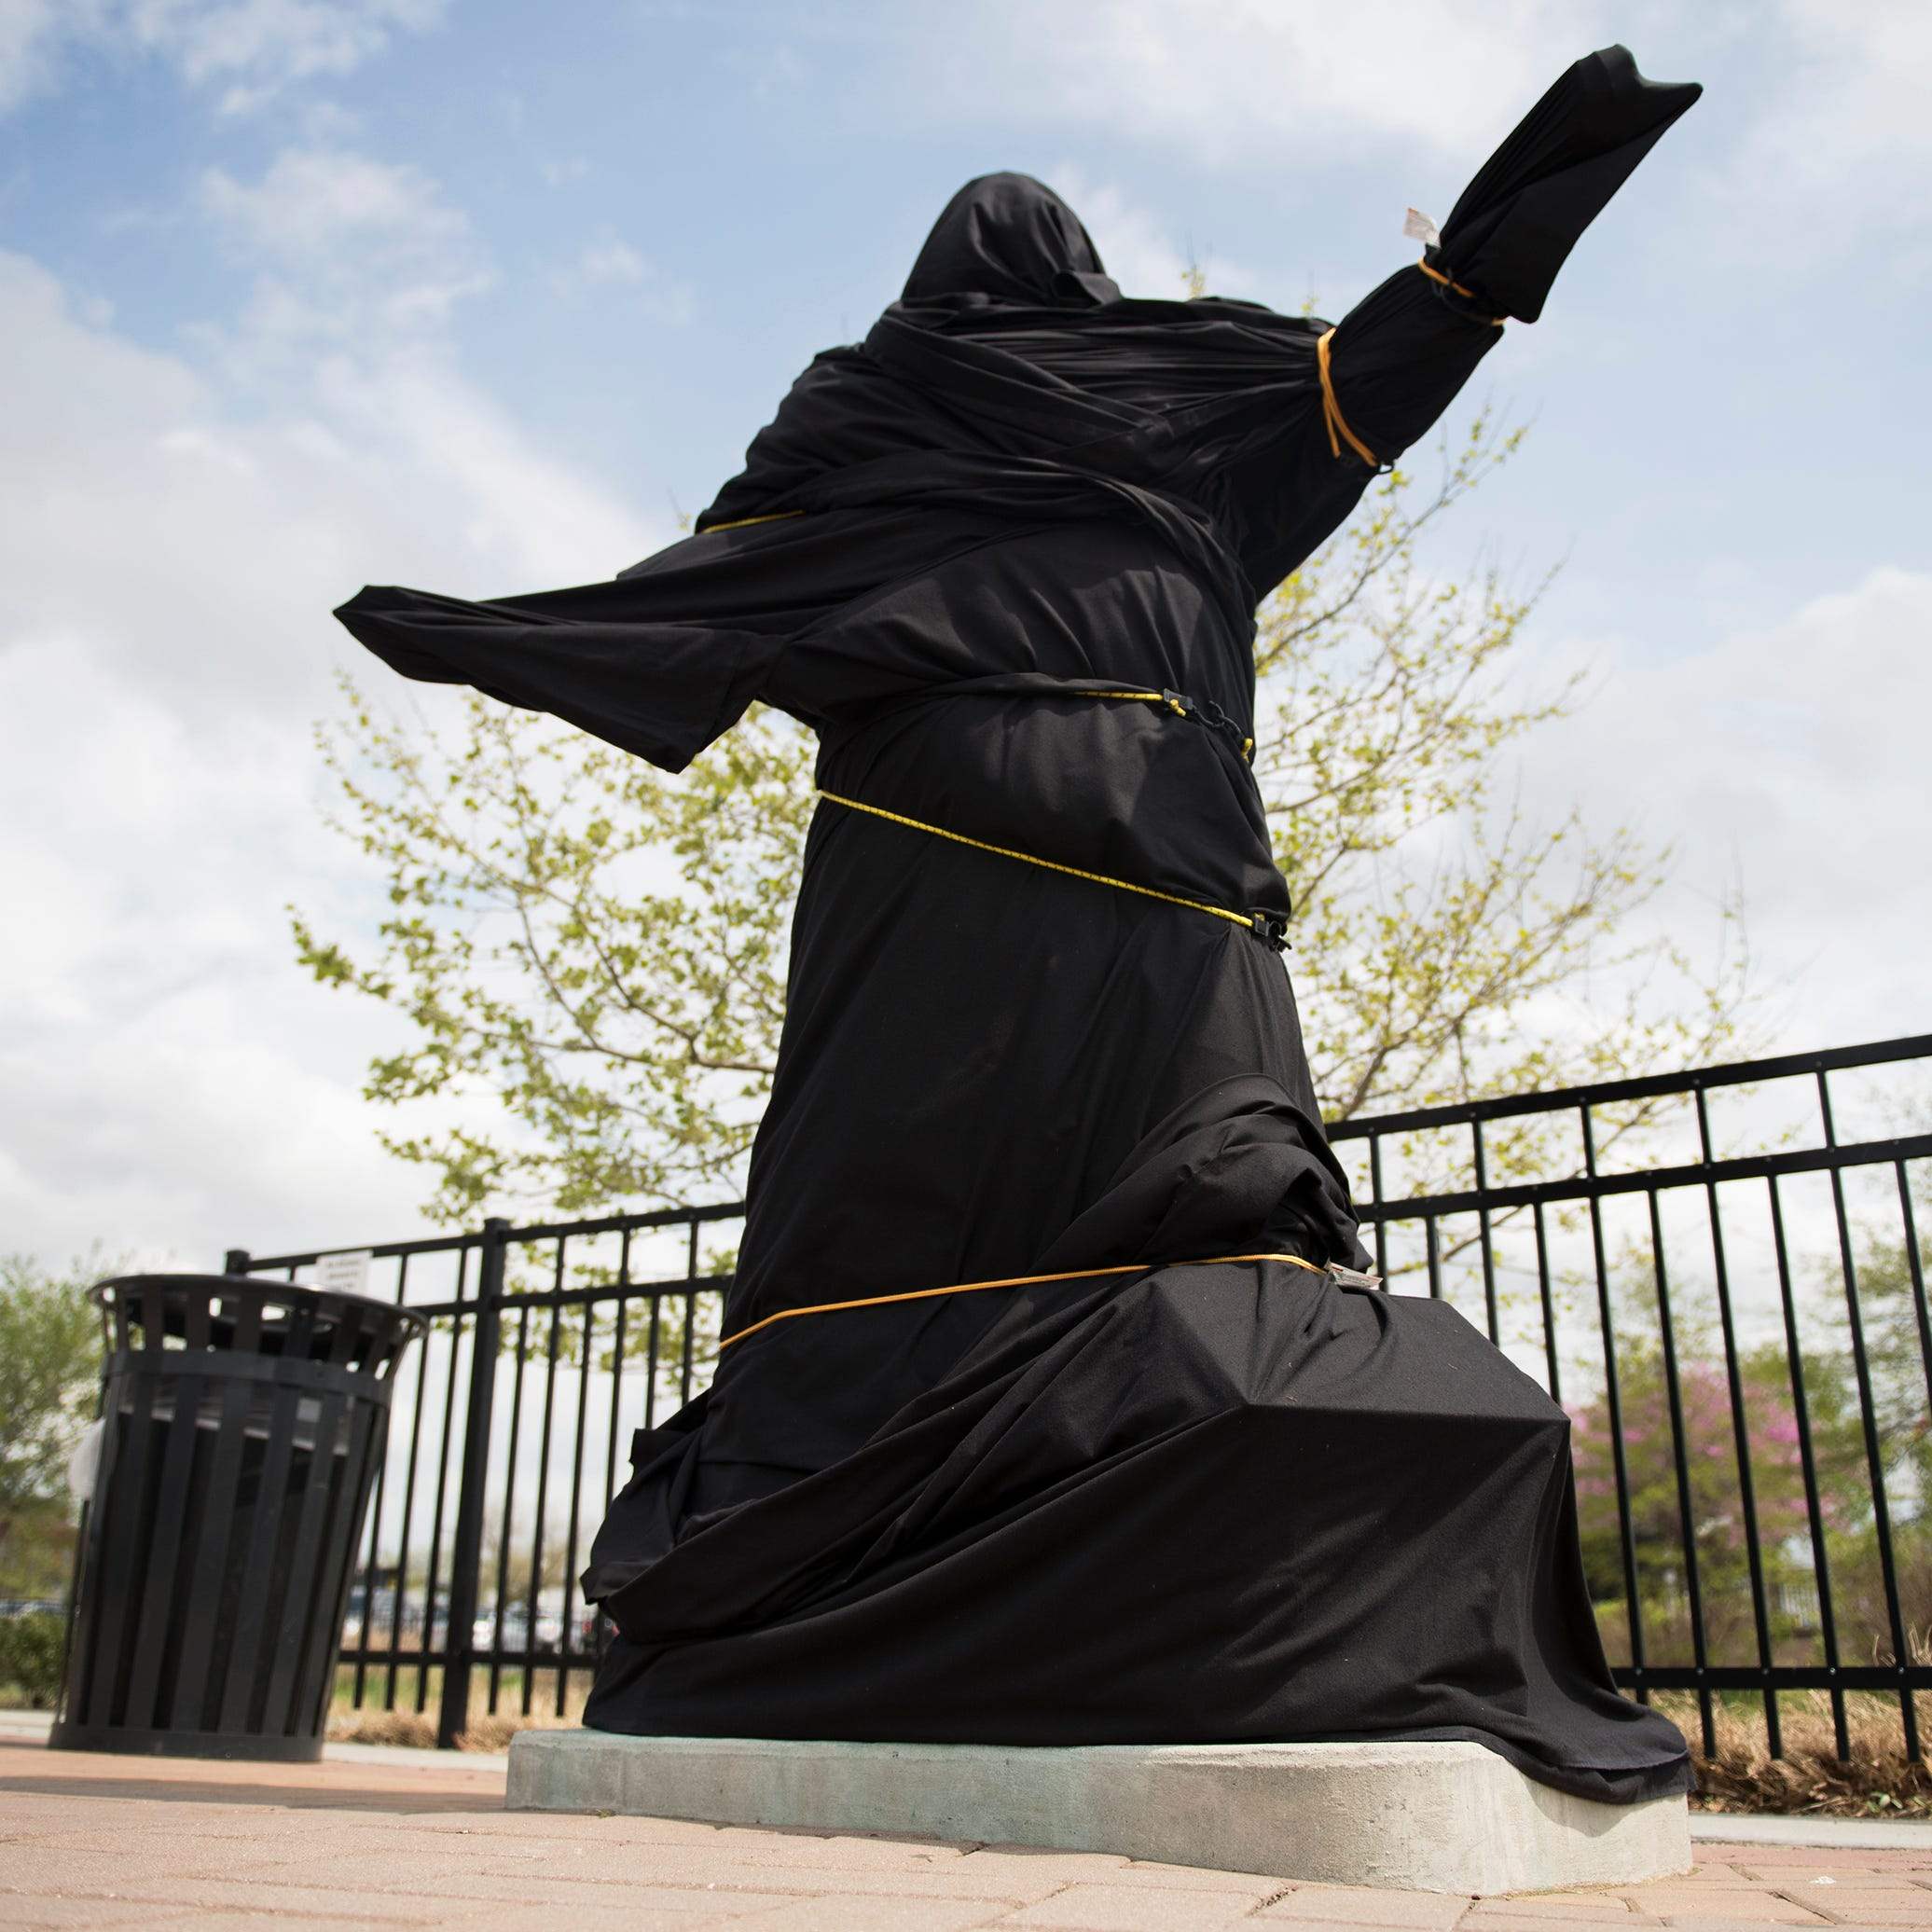 Wildwood veterans, Somerset Patriots want Kate Smith statue